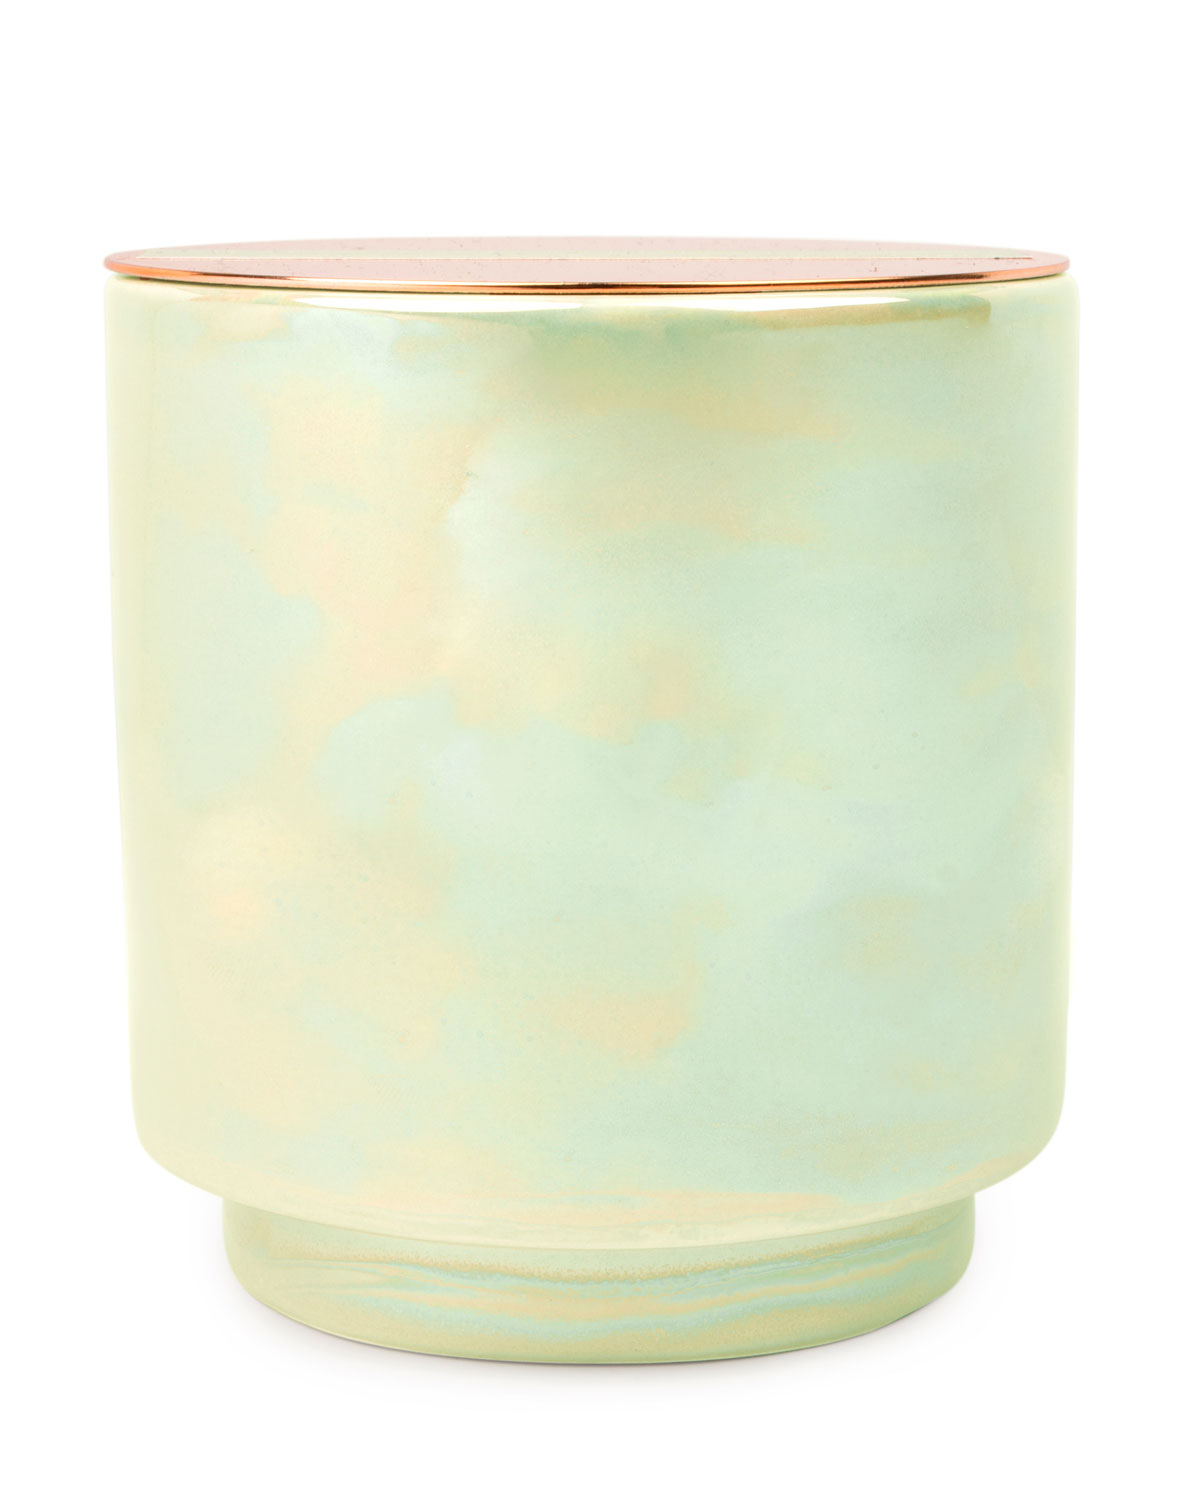 Paddywax White Woods & Mint Iridescent Ceramic Candle, 17 oz. / 482g